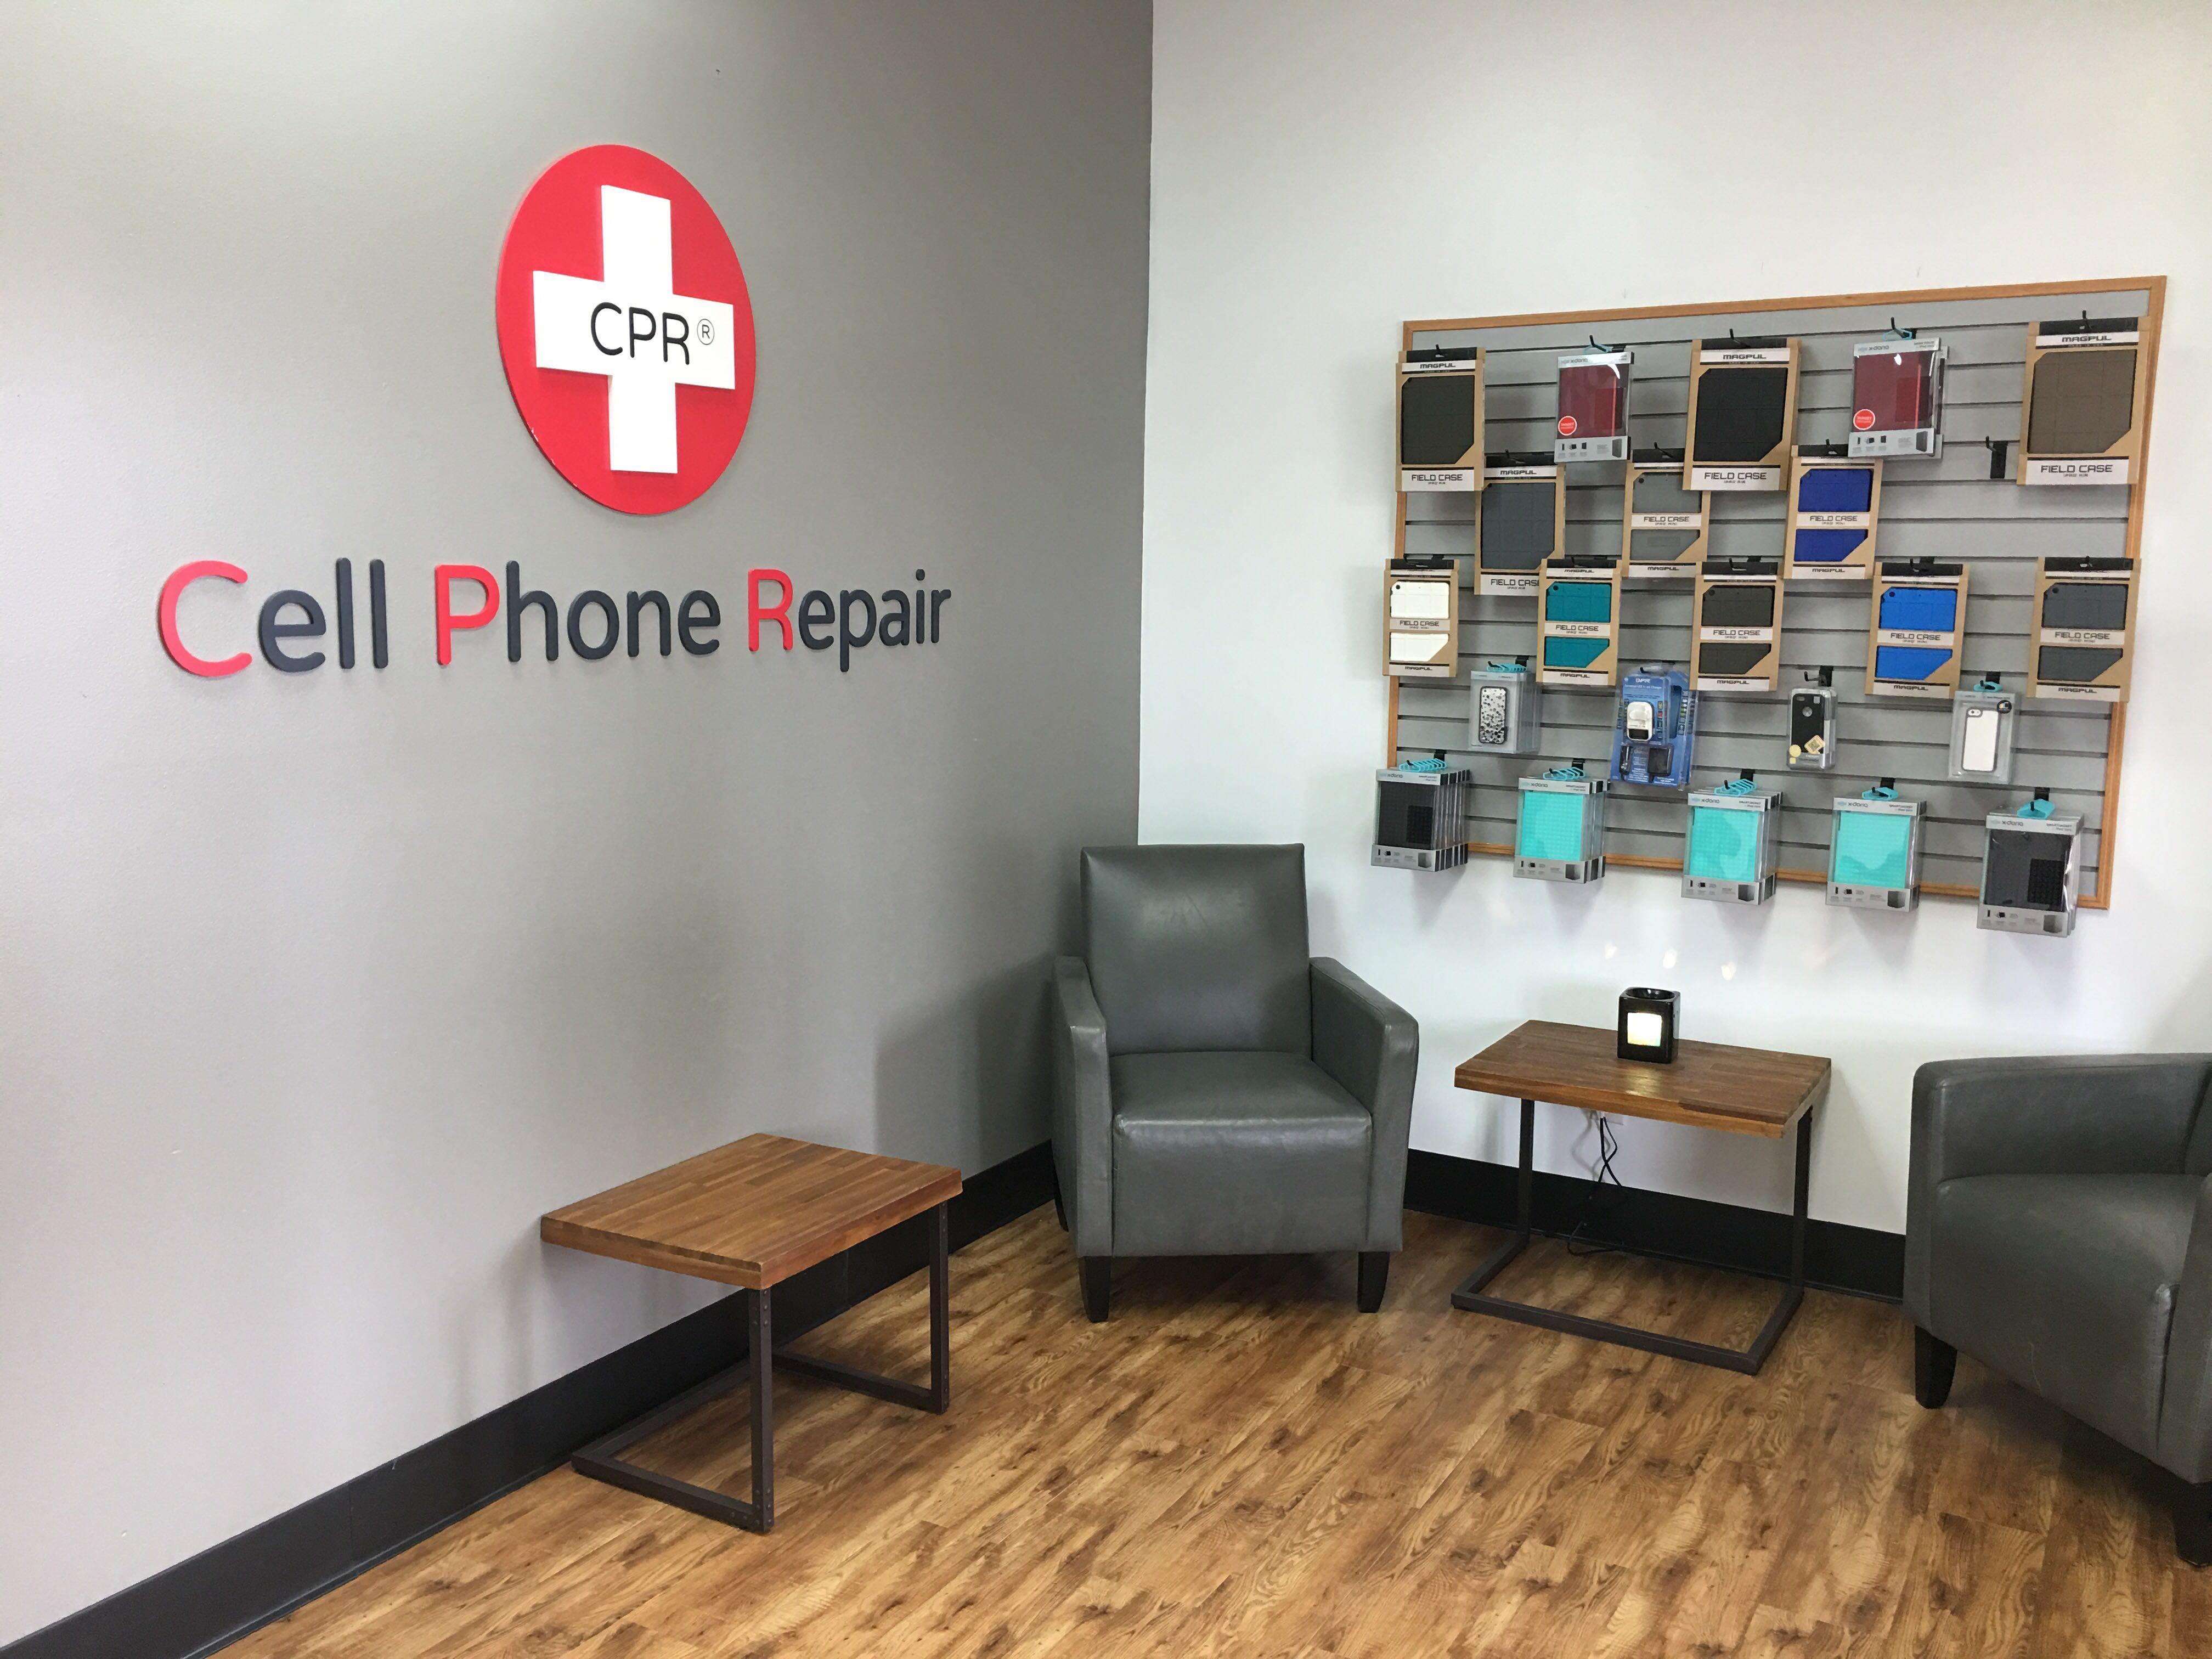 CPR Cell Phone Repair North Myrtle Beach image 1